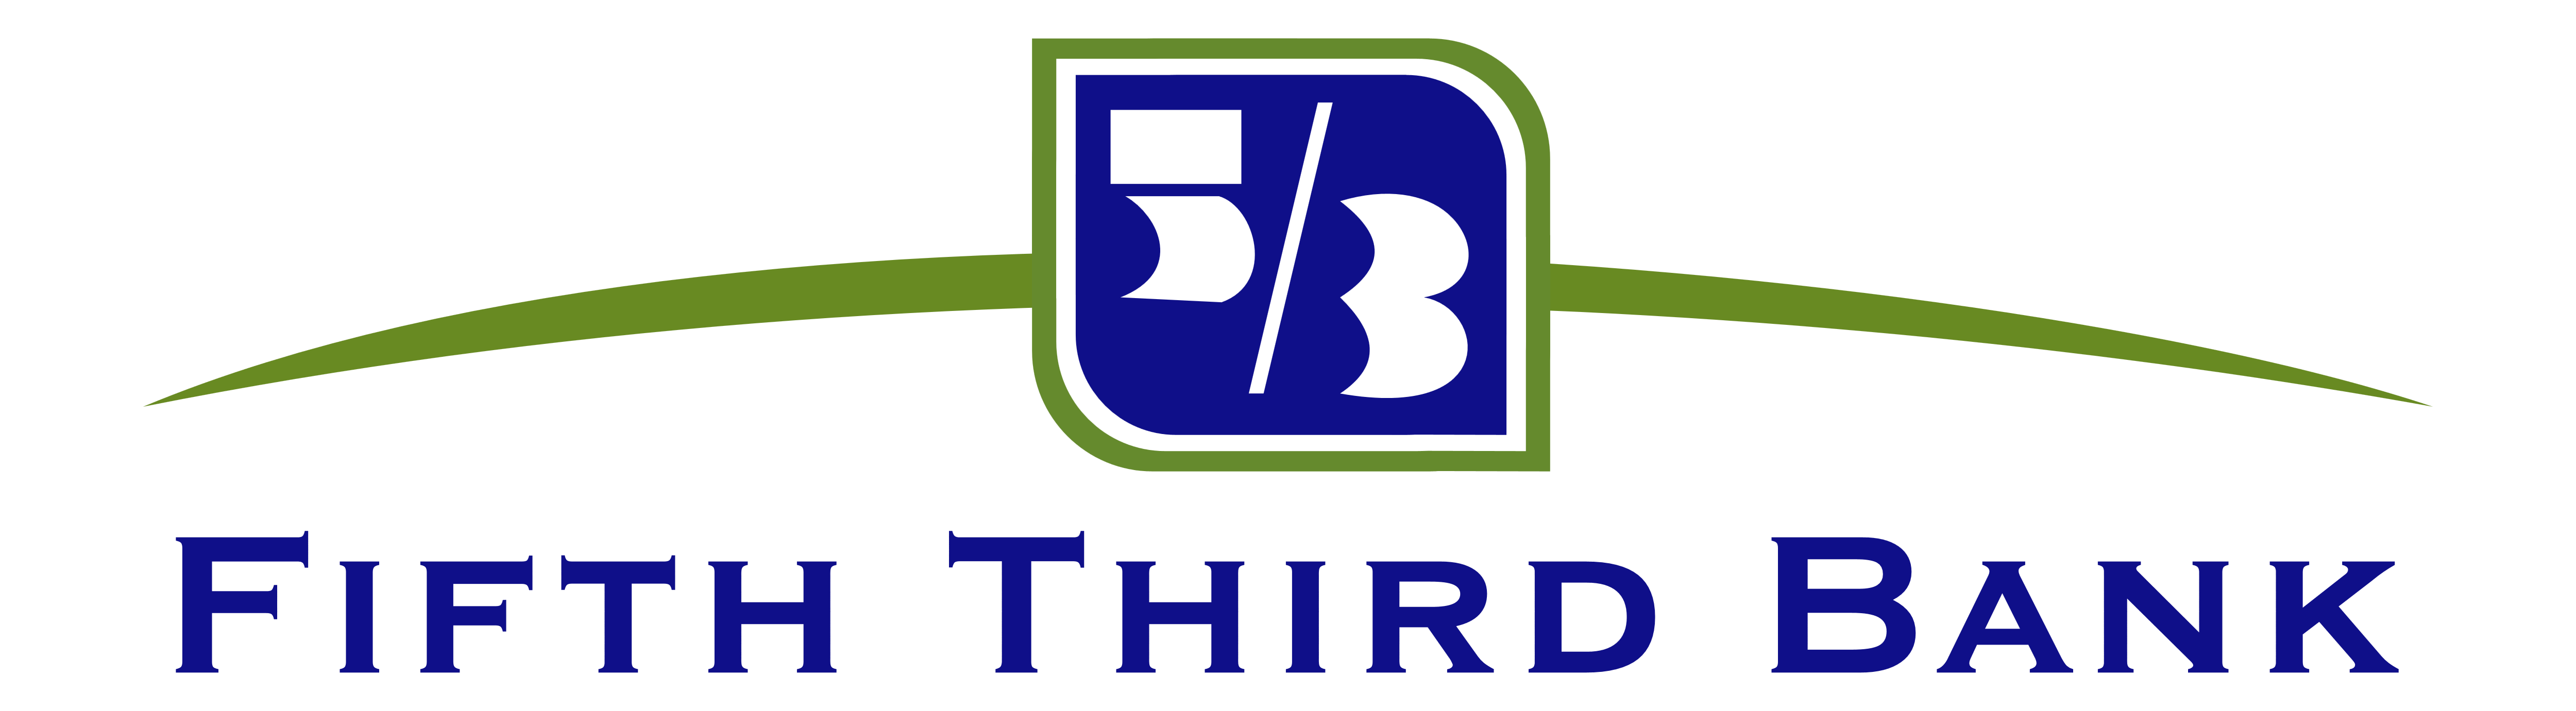 5/3 Bank, Fifth Third Bank.